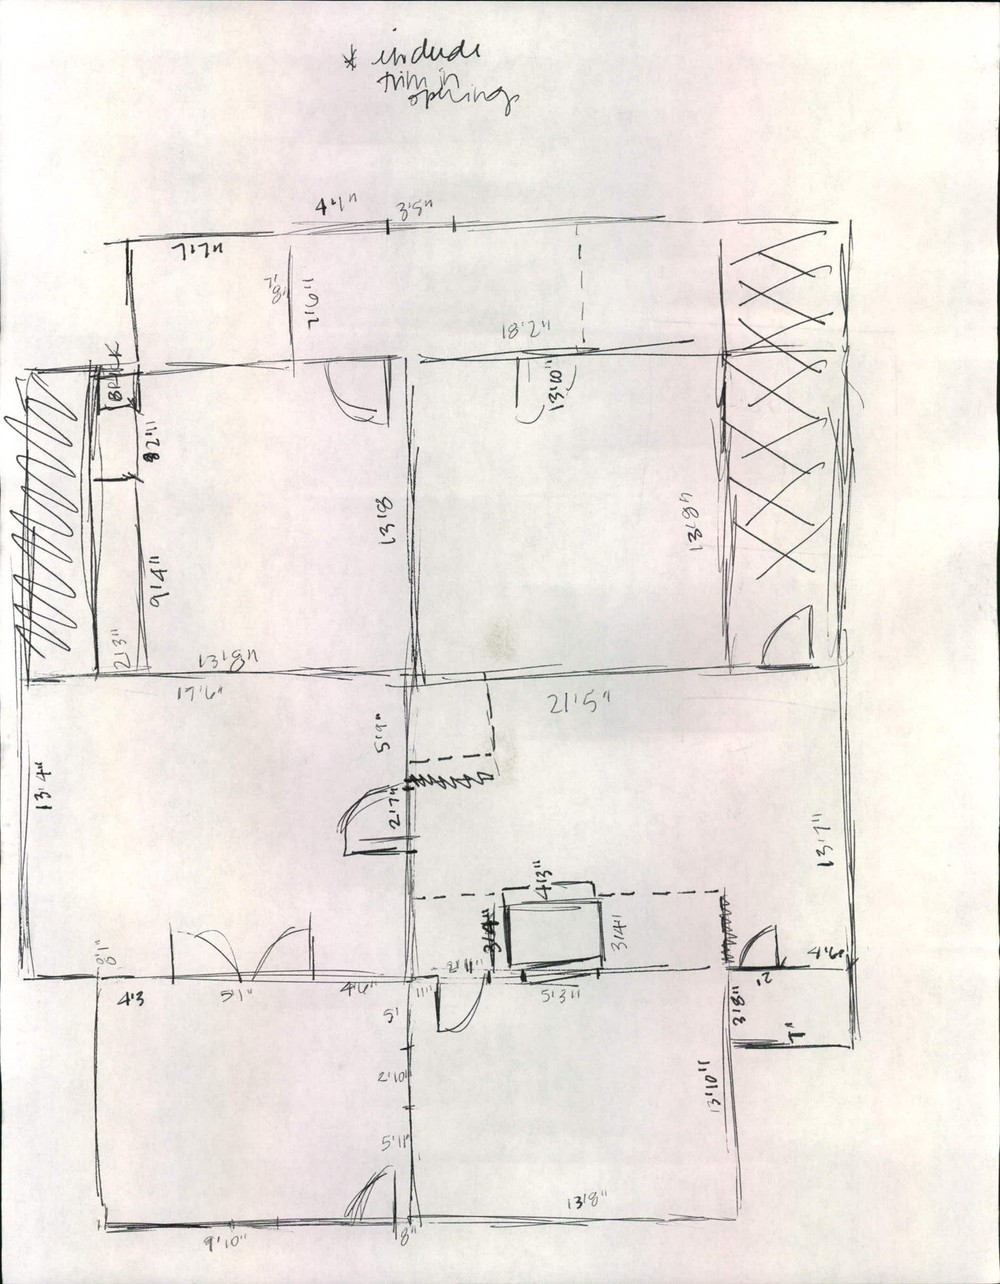 EB Loves Old Houses | Myrtle House Floor Plan